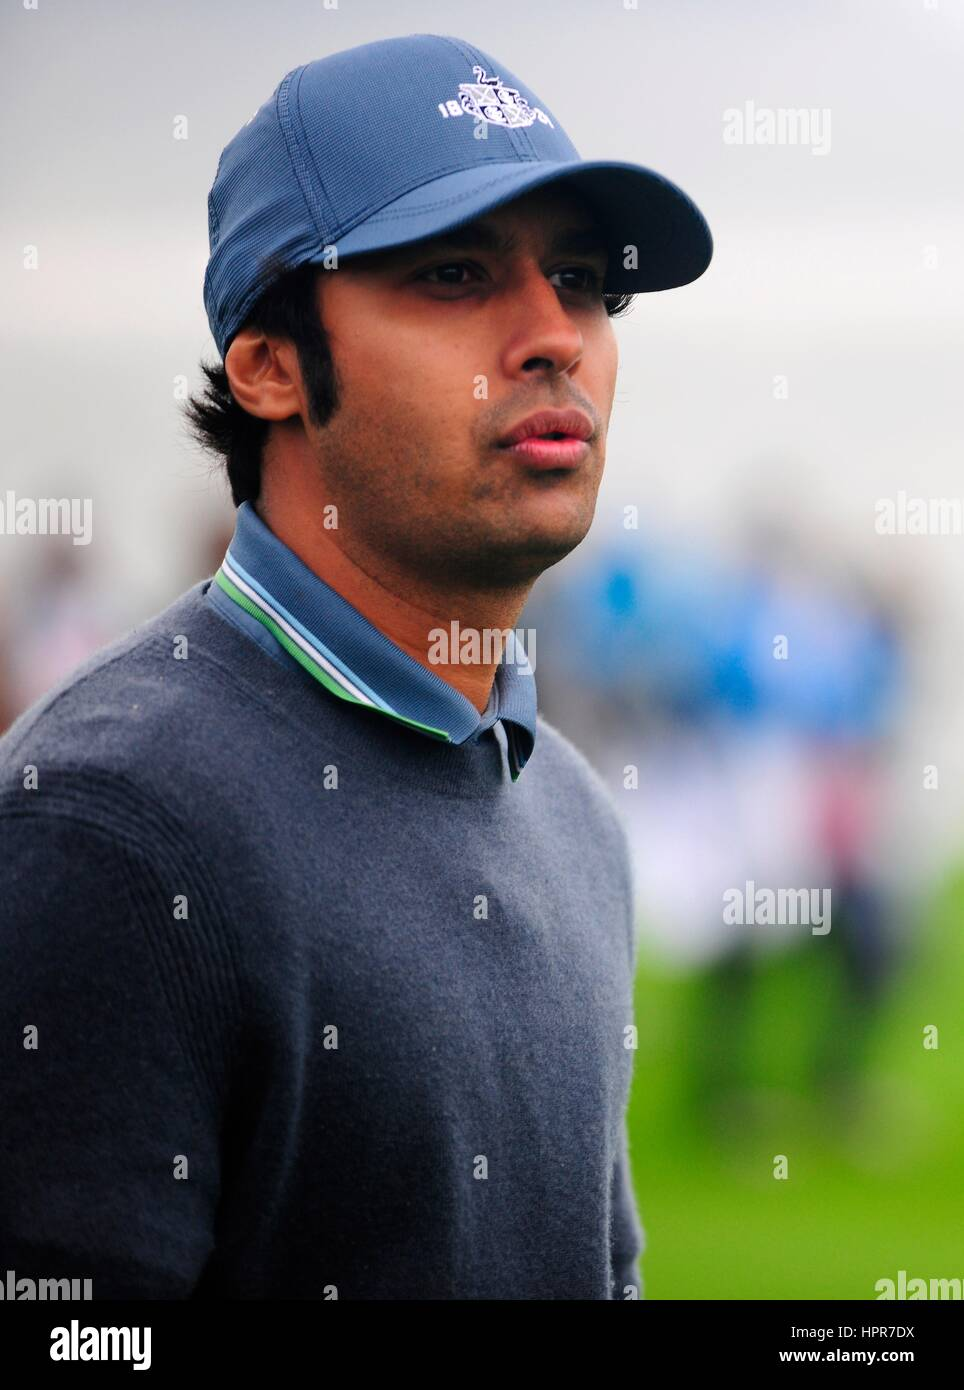 Actor Kunal Nayyar during the AT&T Pebble Beach National Pro-Am golf tournament February 8, 2017 in Monterey, - Stock Image